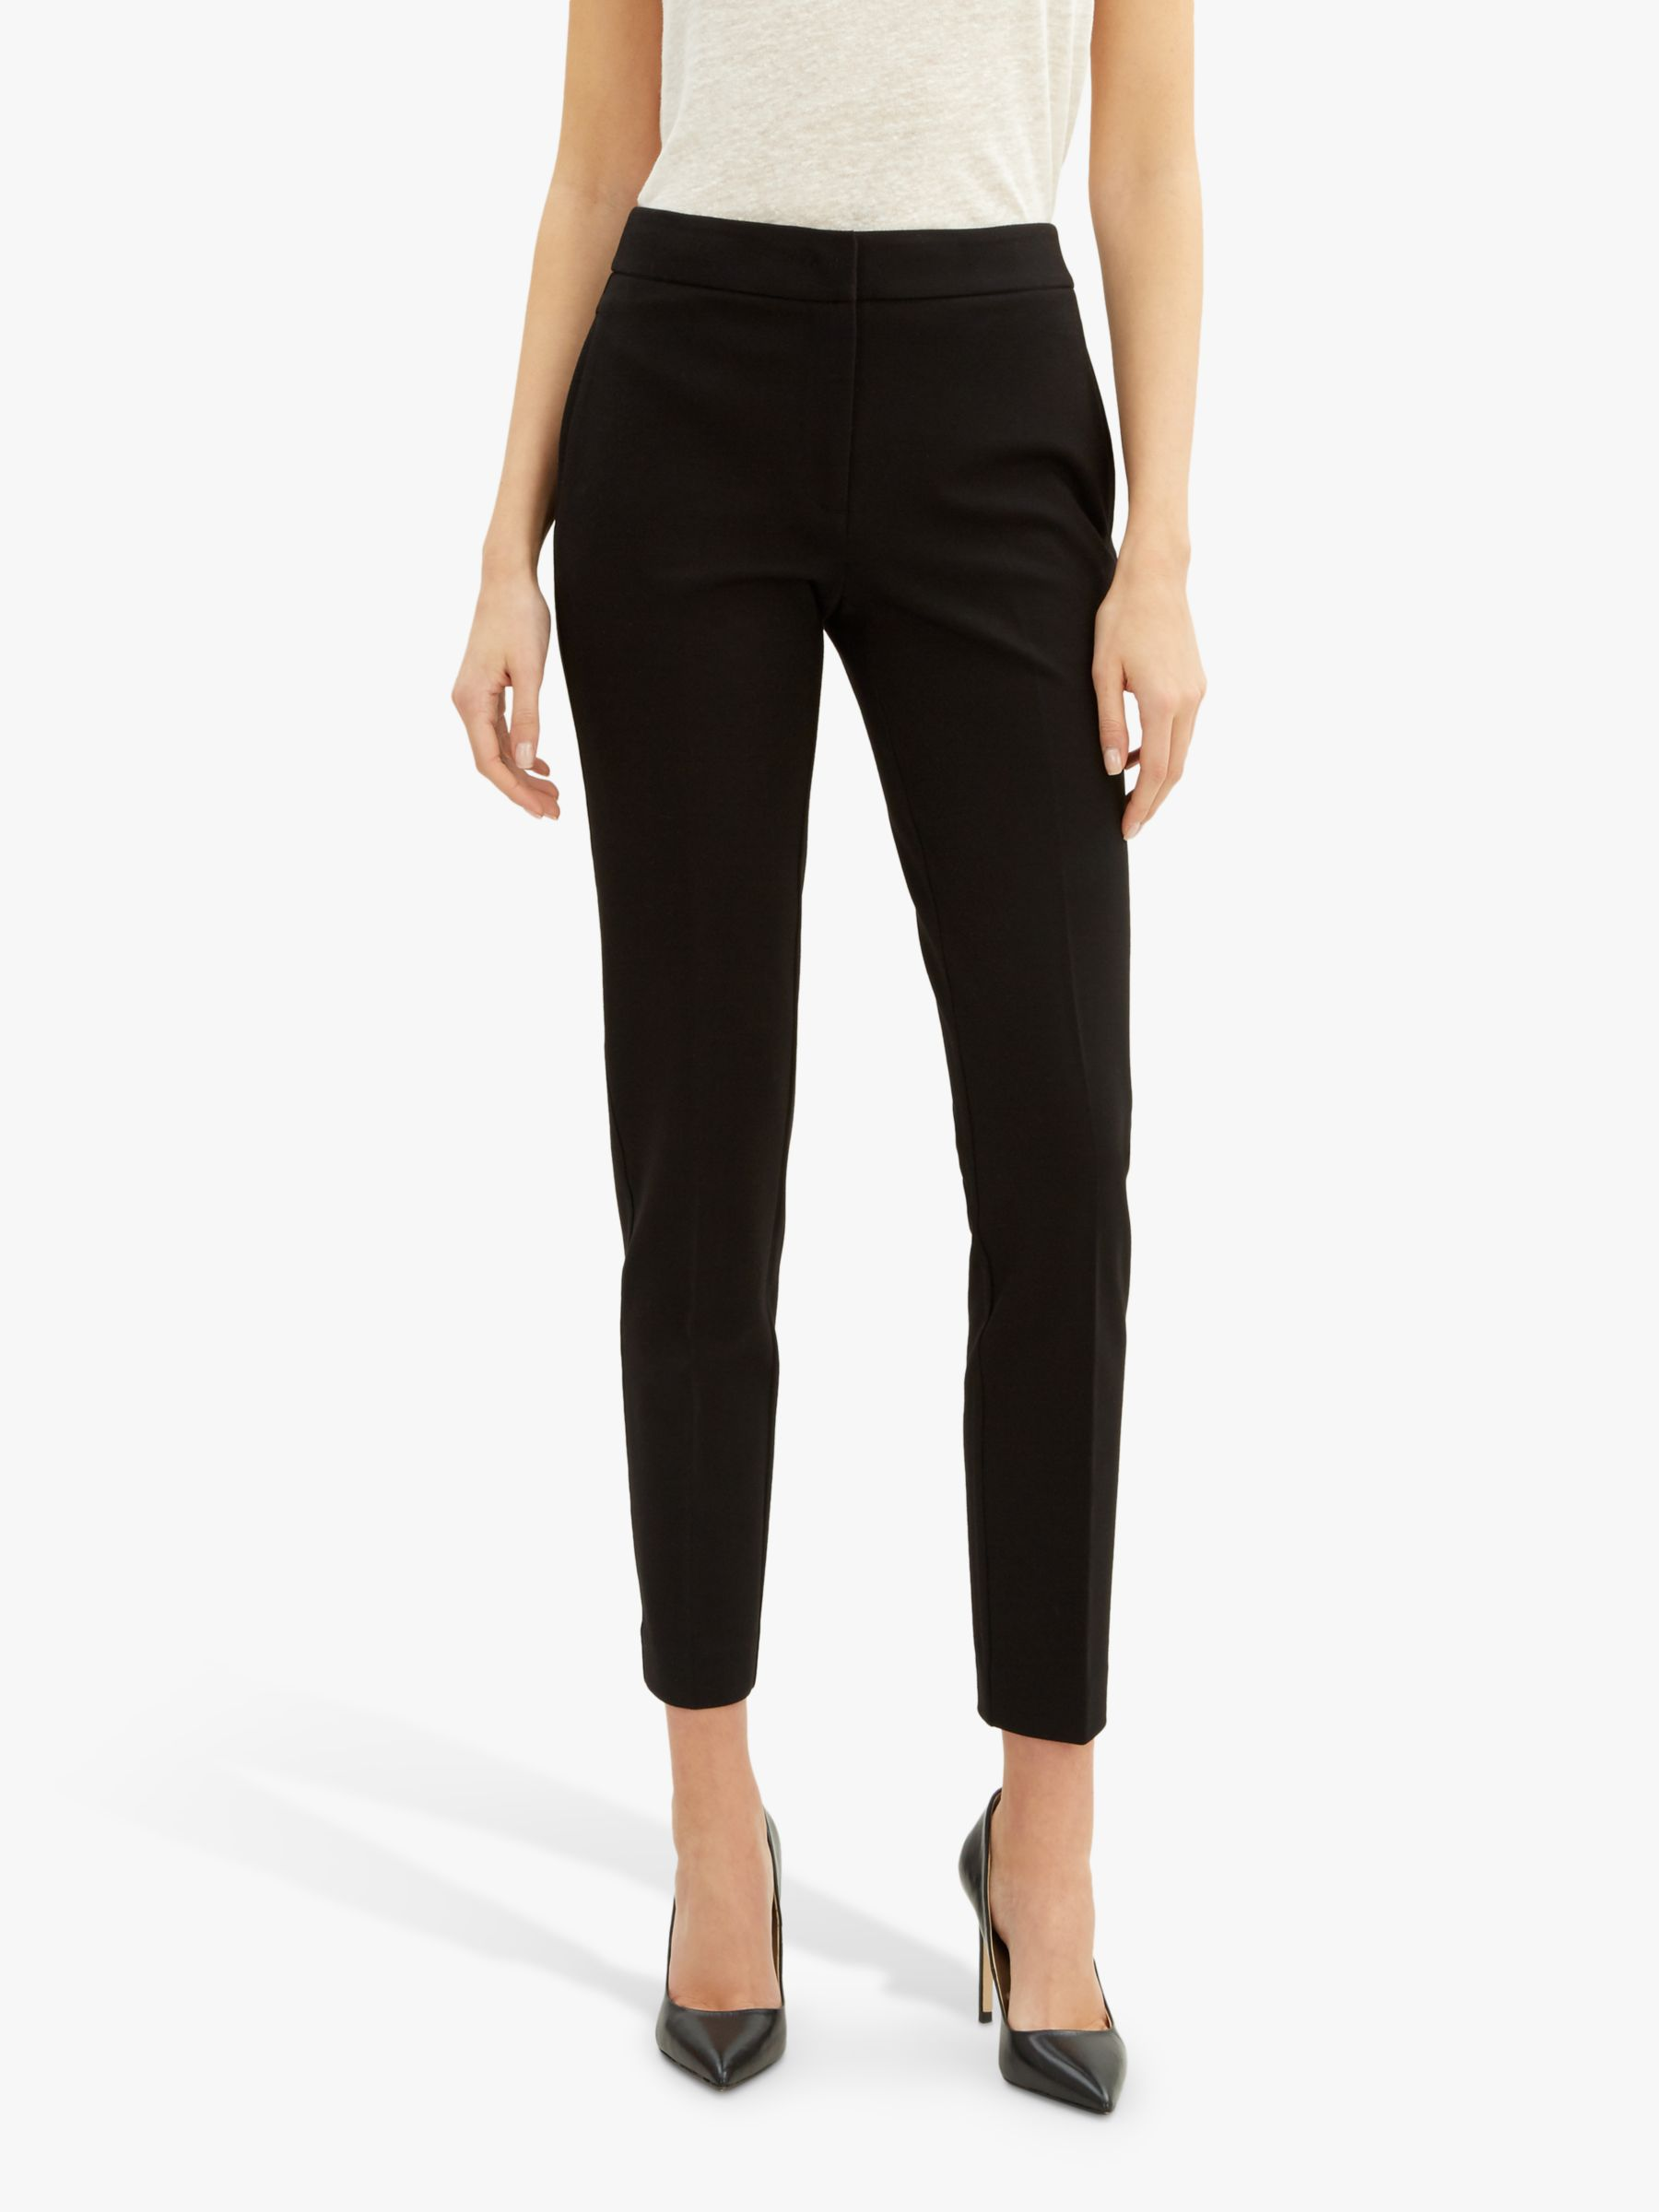 Jaeger Jaeger Ponte Tailored Ankle Trousers, Black